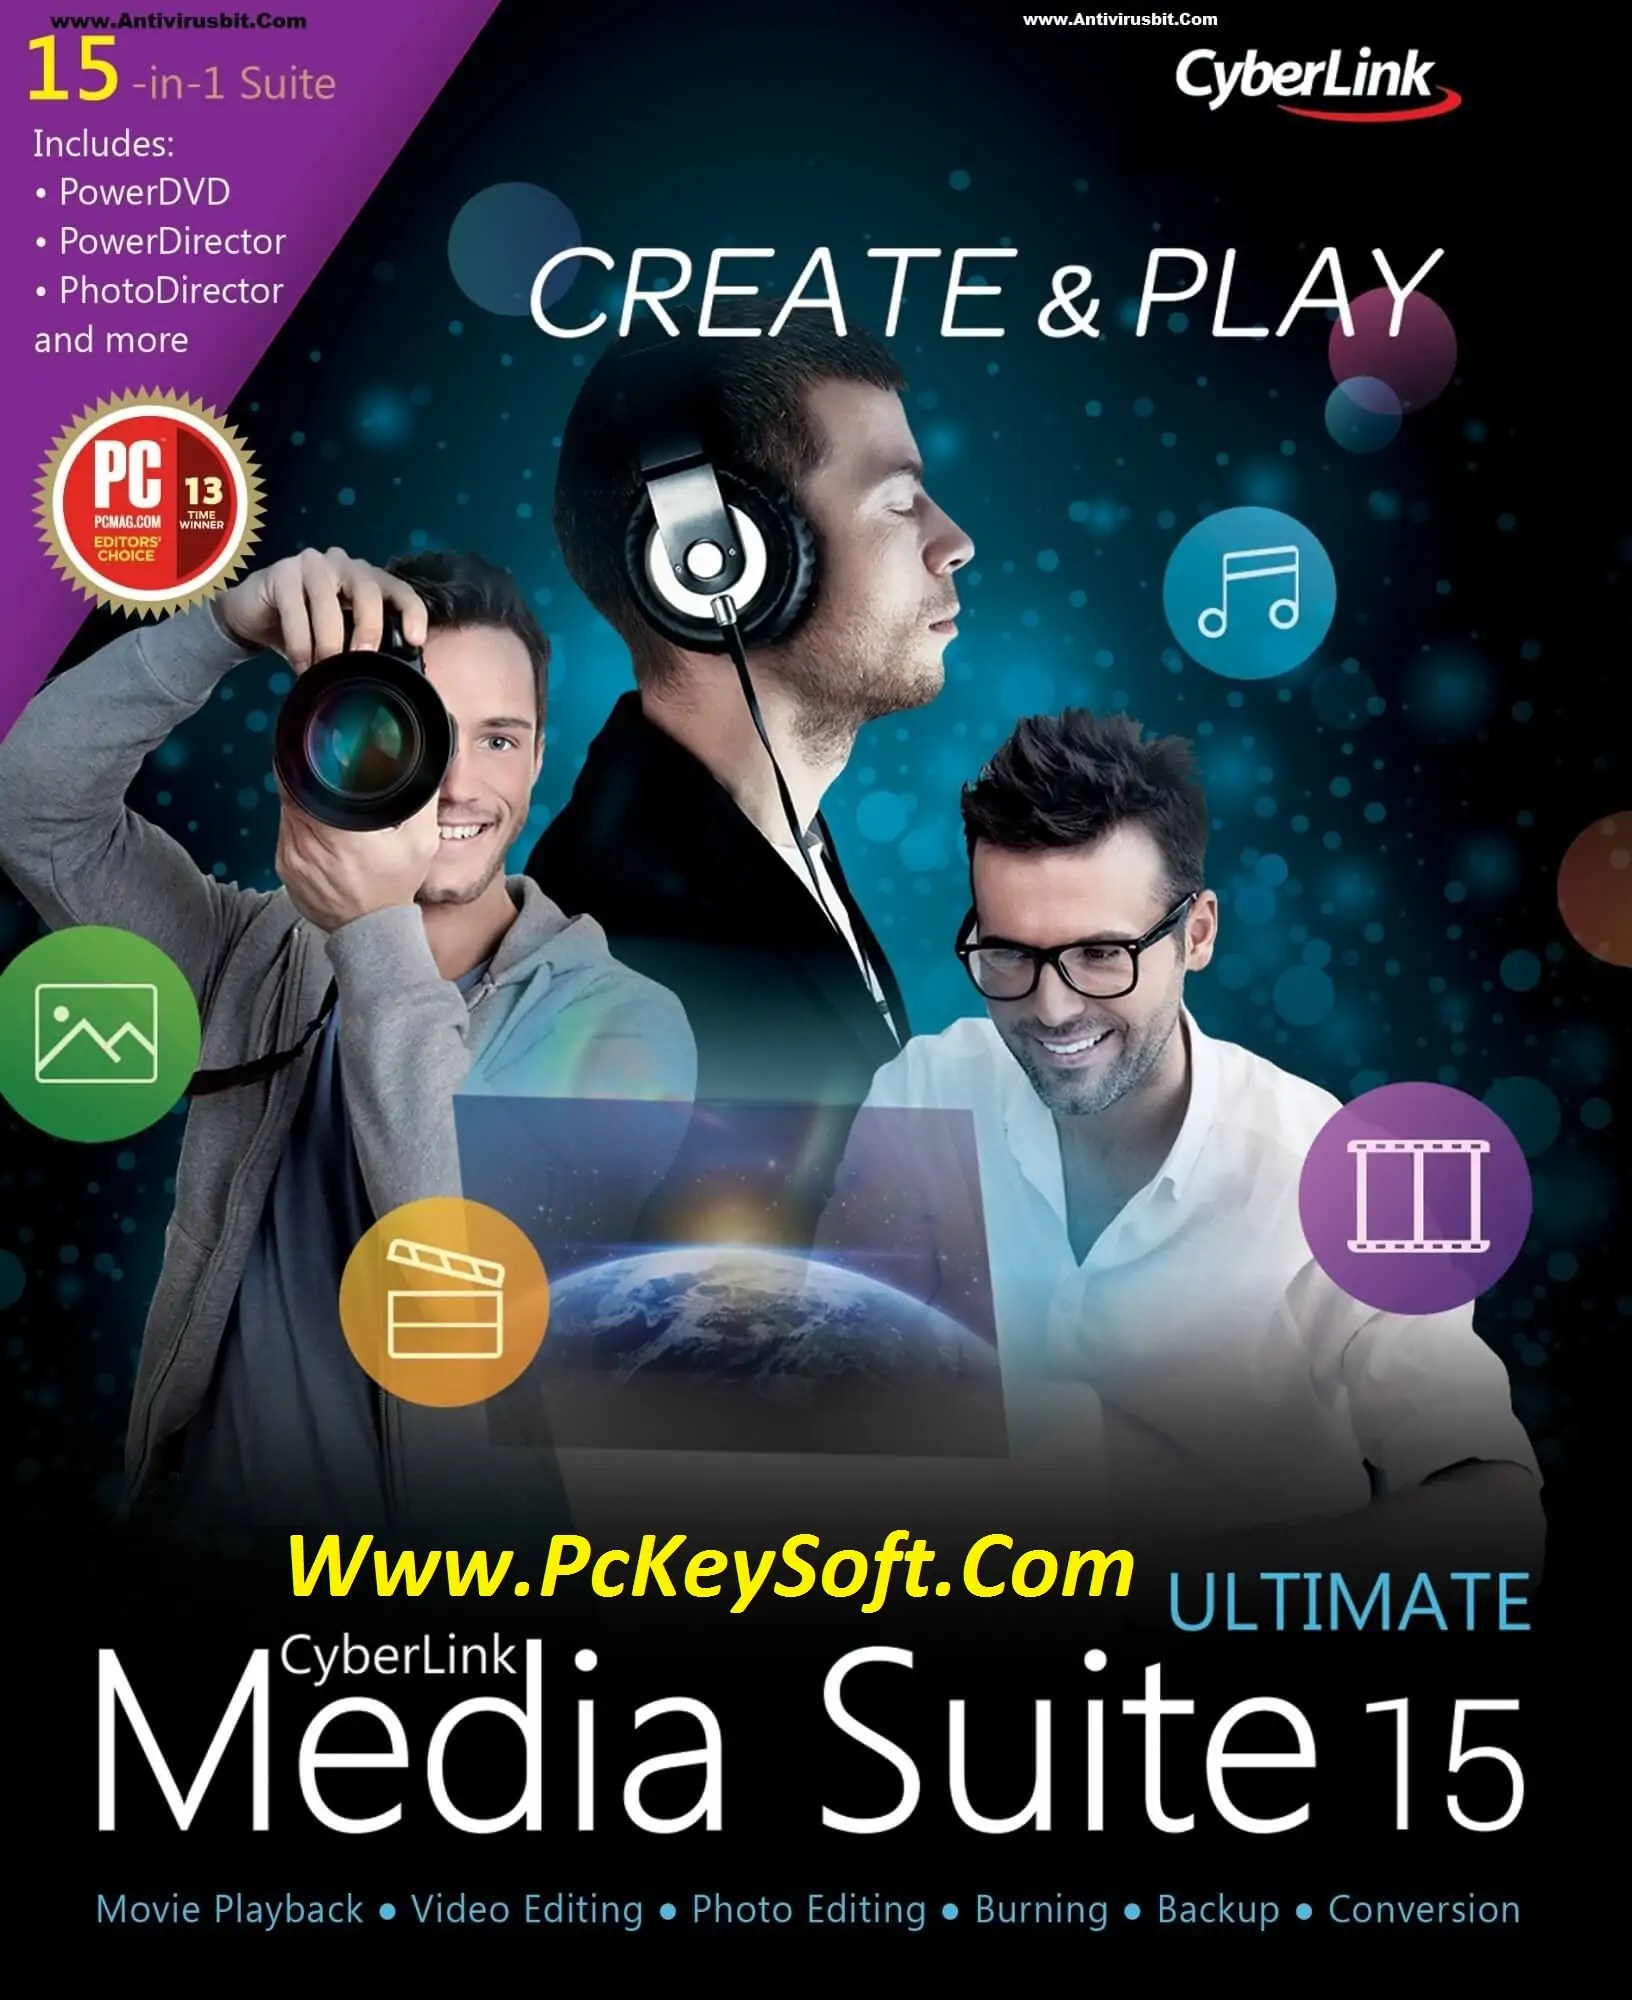 CyberLink Media Suite 15 Ultimate Crack Plus Keygen Free Download 2017